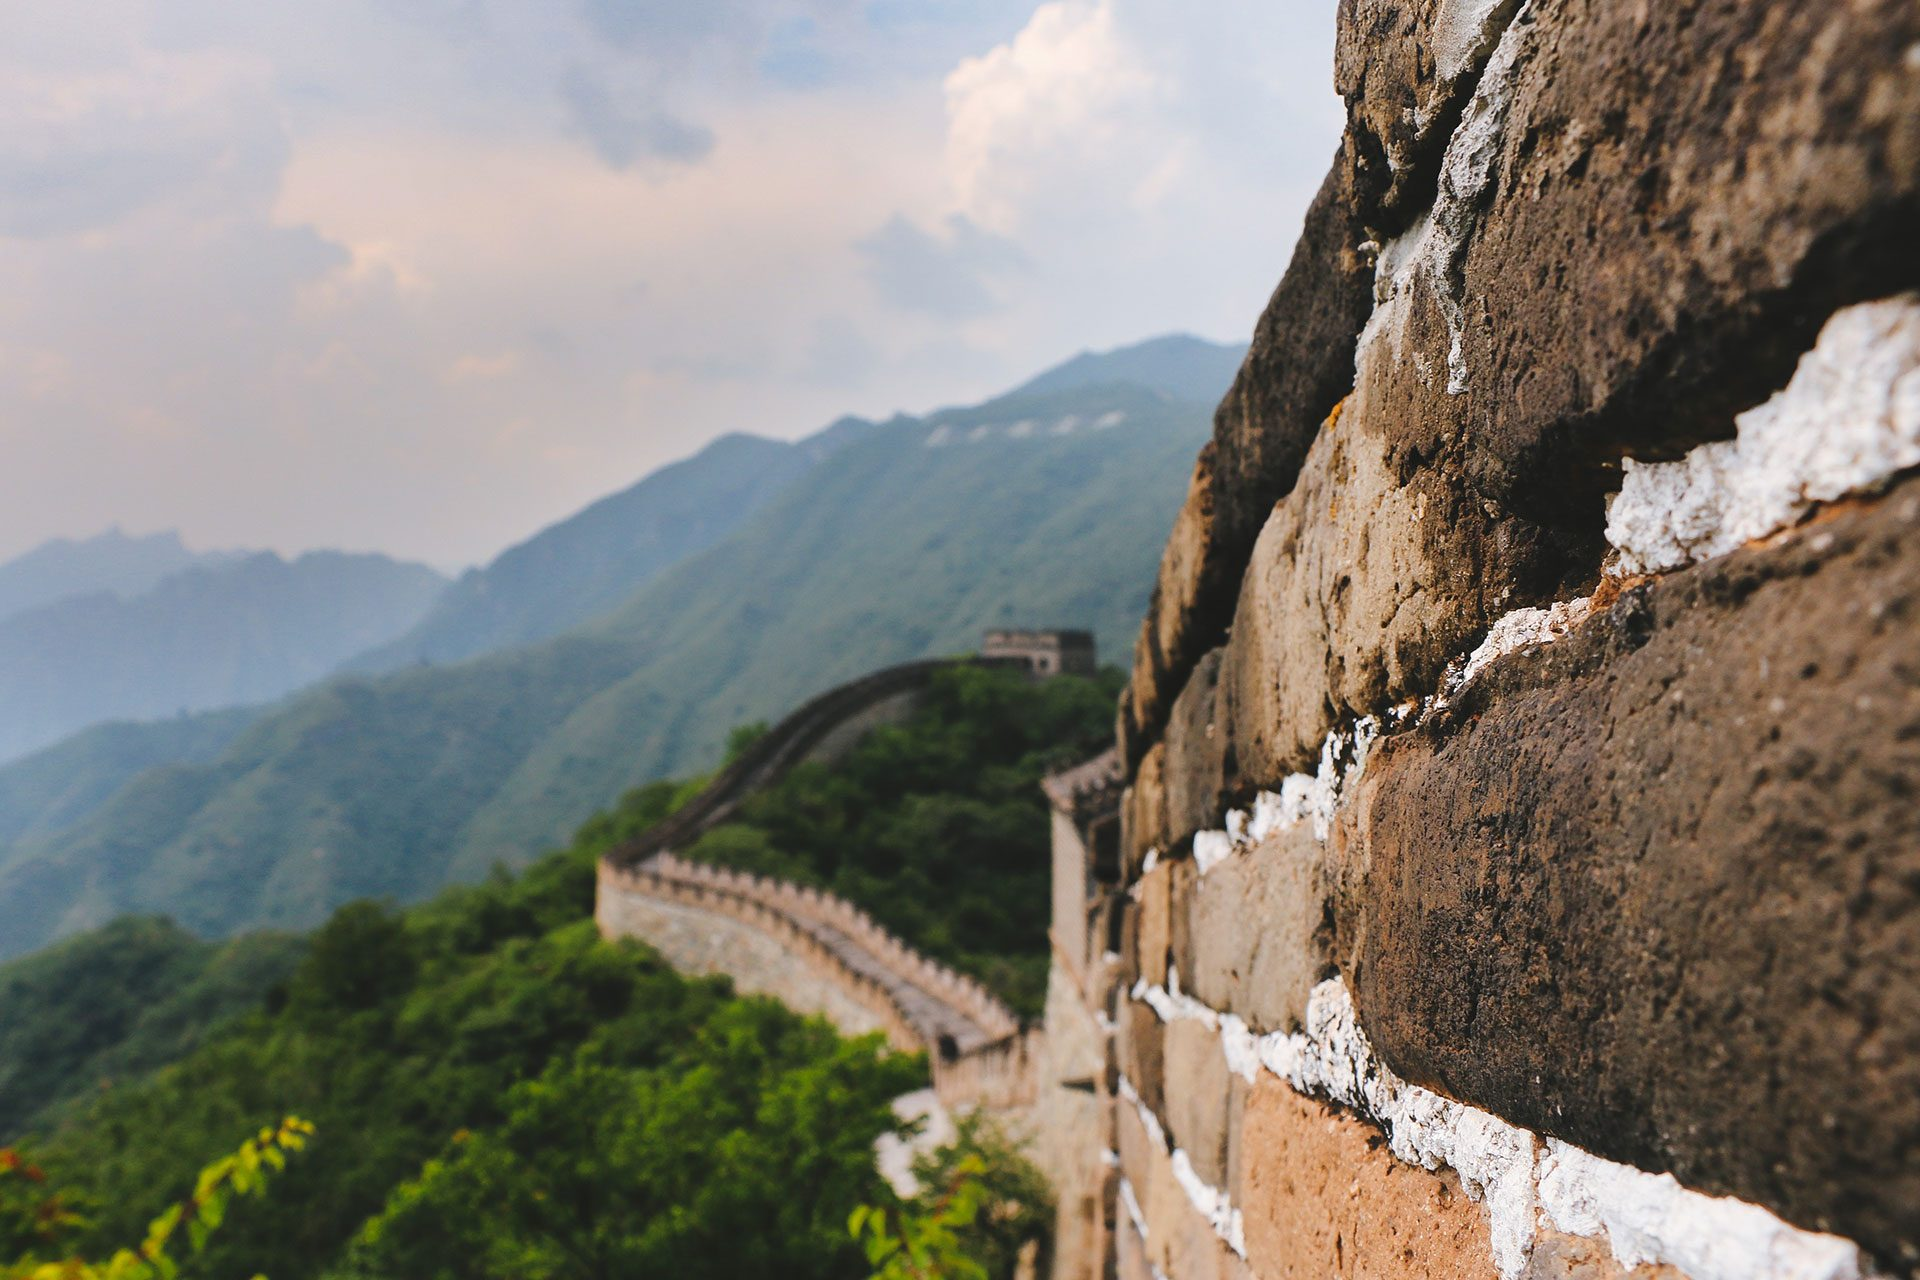 10 Things To Do in Great Wall